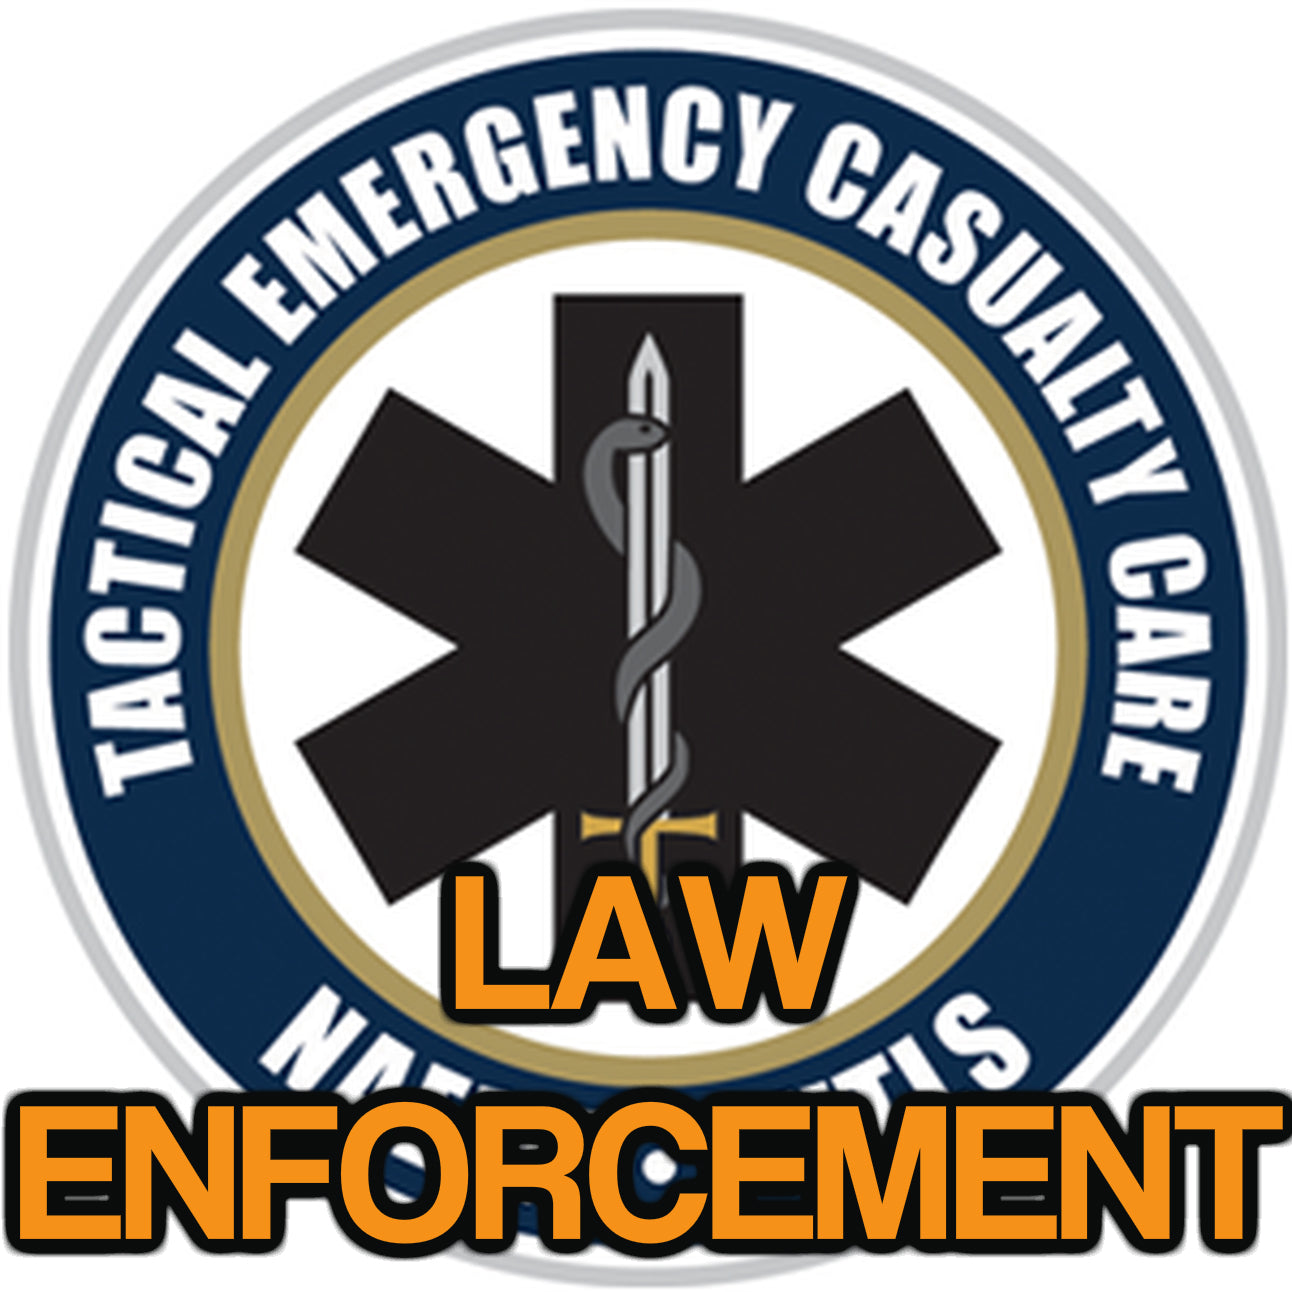 Tactical Emergency Casualty Care Provider Course Law Enforcement